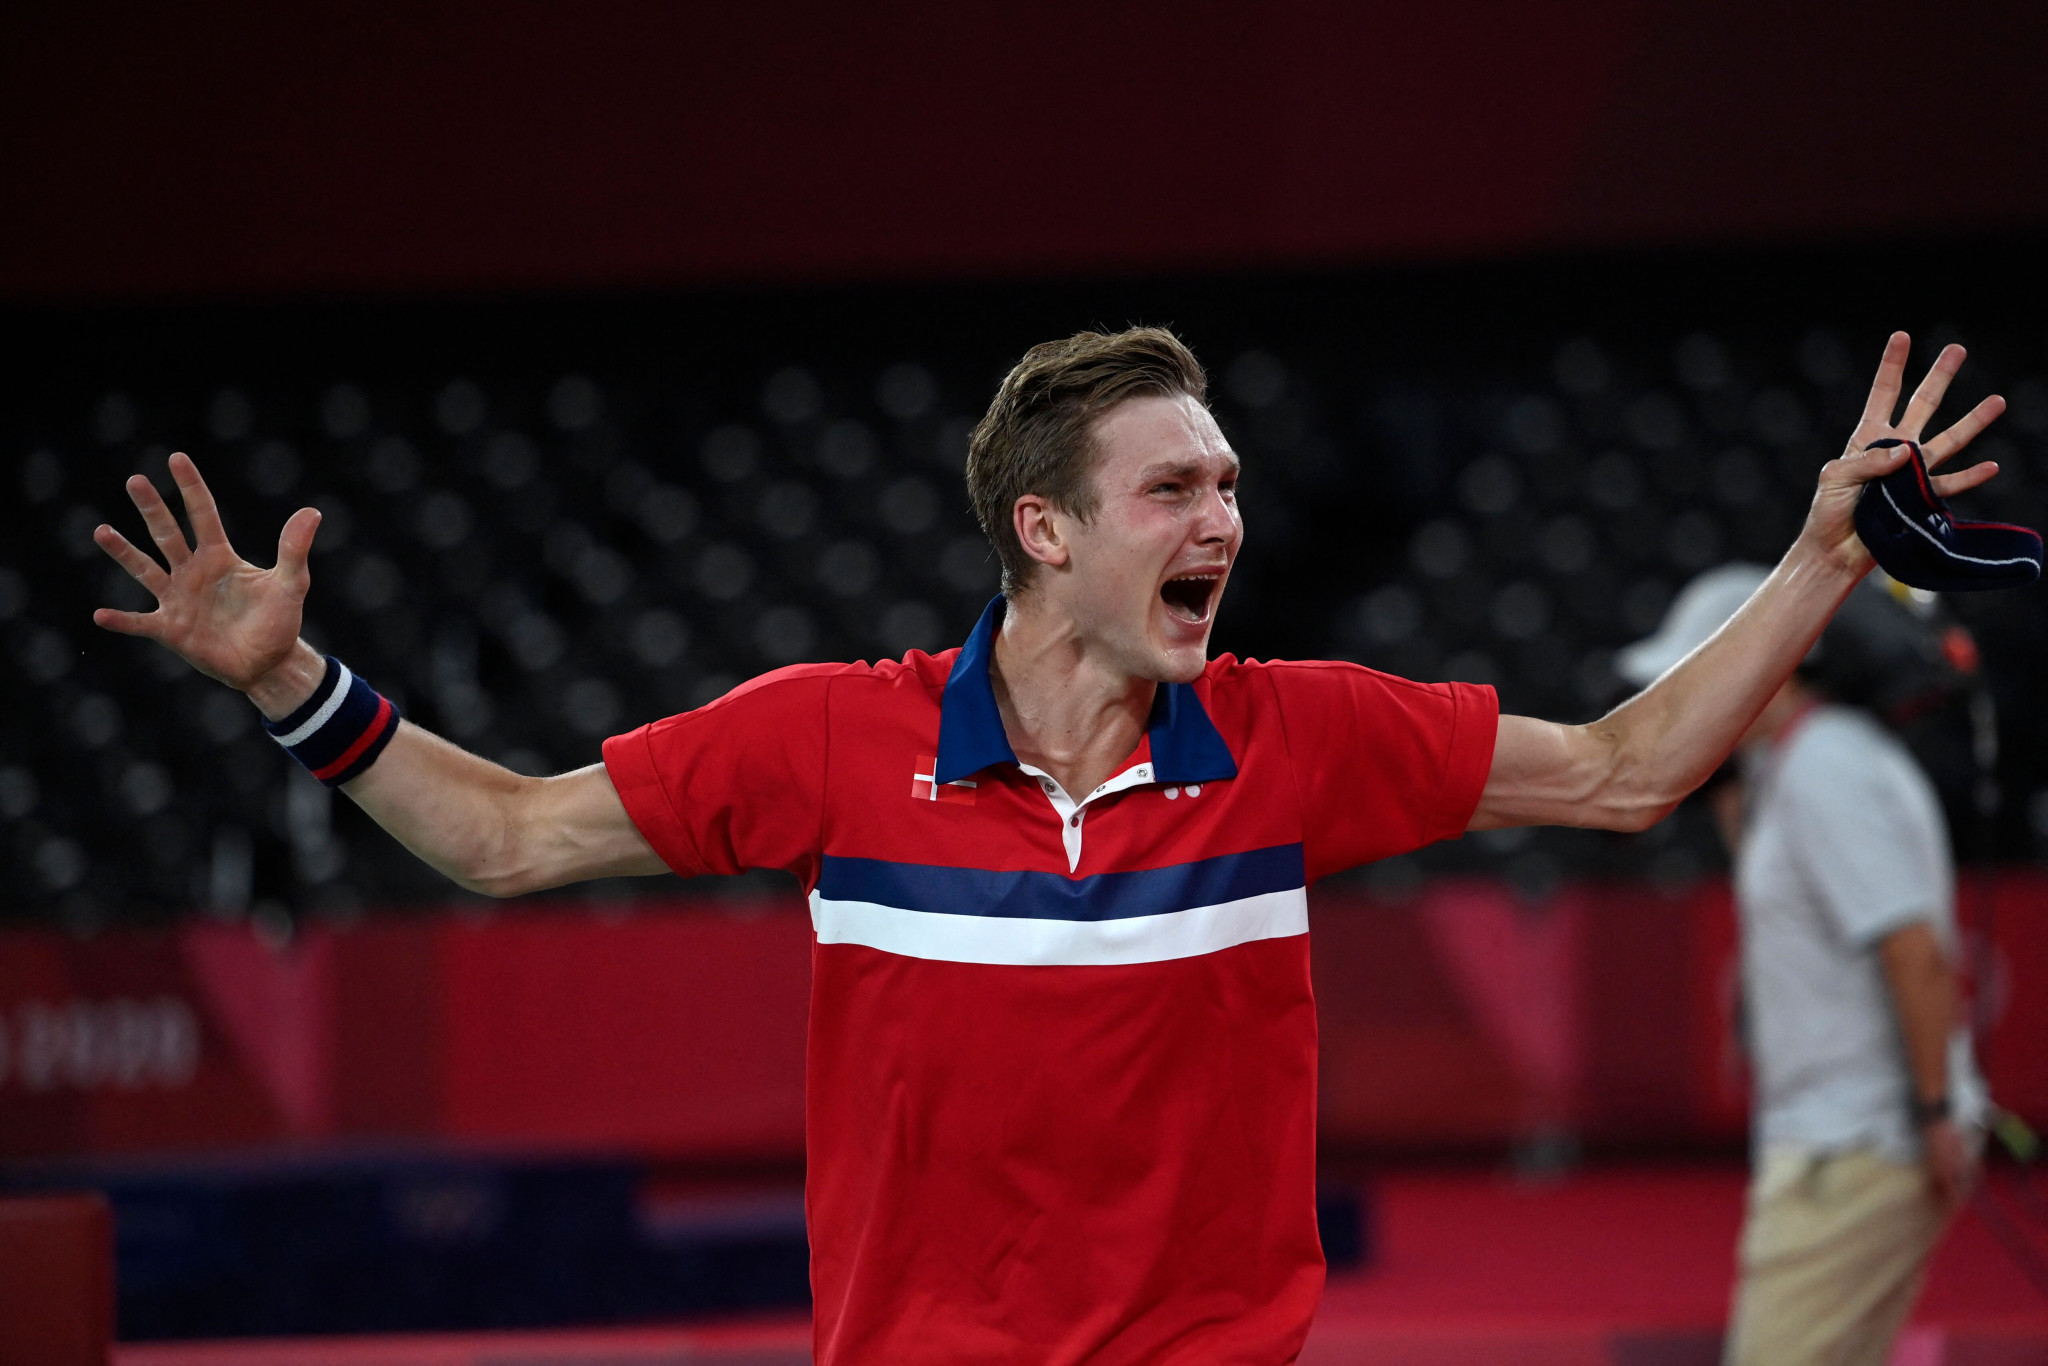 Axelsen beats reigning champion Chen to win Olympic badminton title in men's singles